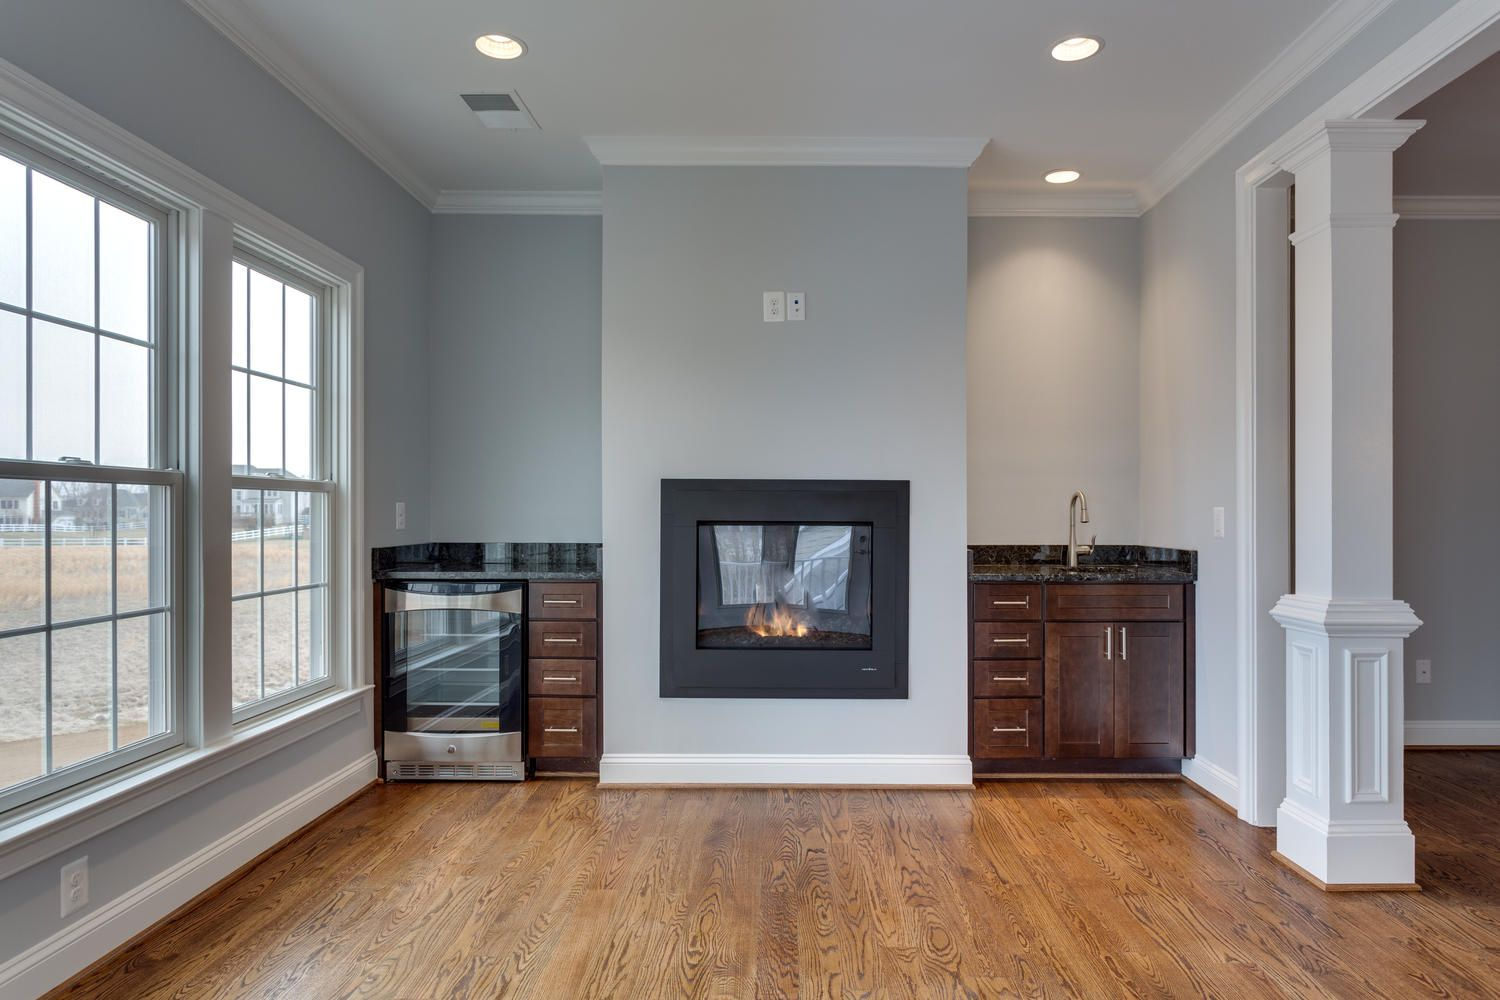 Master Bedroom Kingston master bedroom coffee bar & fireplace | kingston royce homes